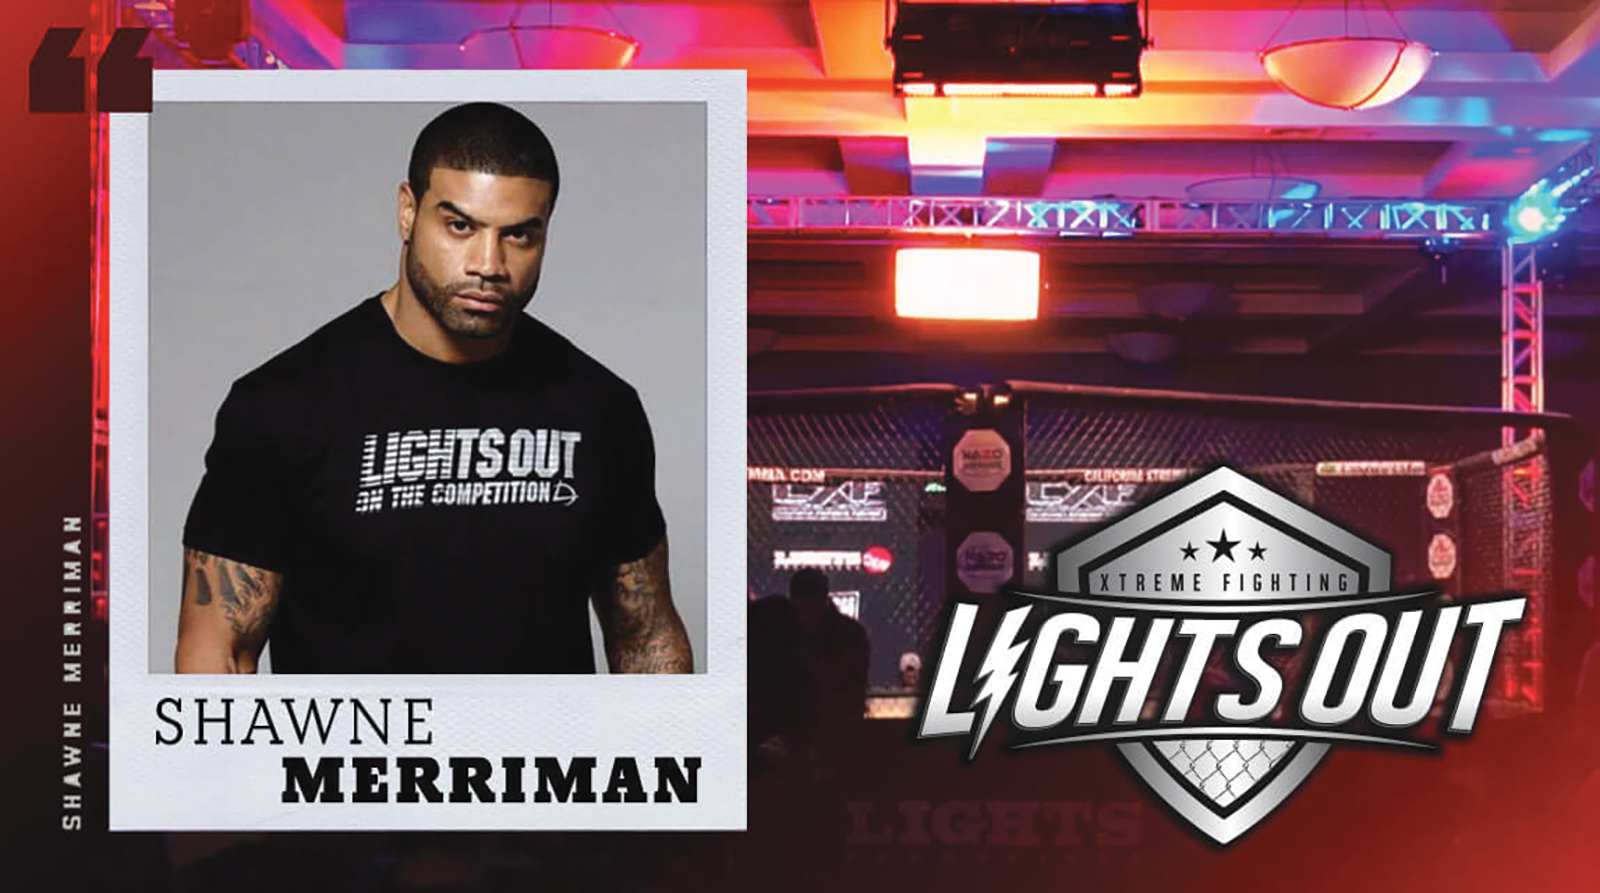 Shawne Merriman collaborates in the development of the LXF Fighting Events. (courtesy photo)